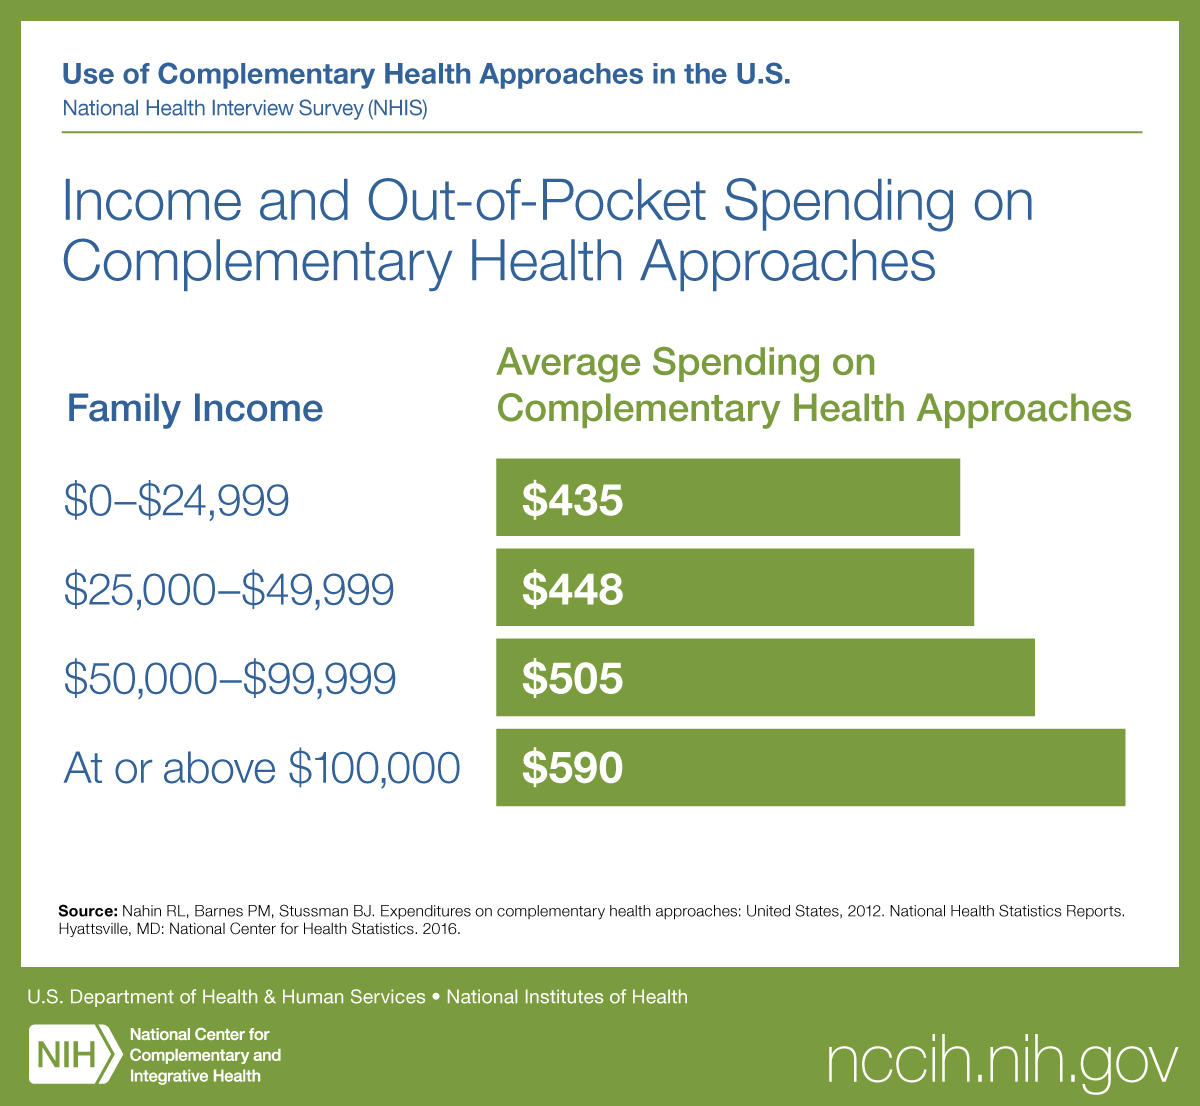 Income and Out-of-Pocket Spending on Complementary Health Approaches